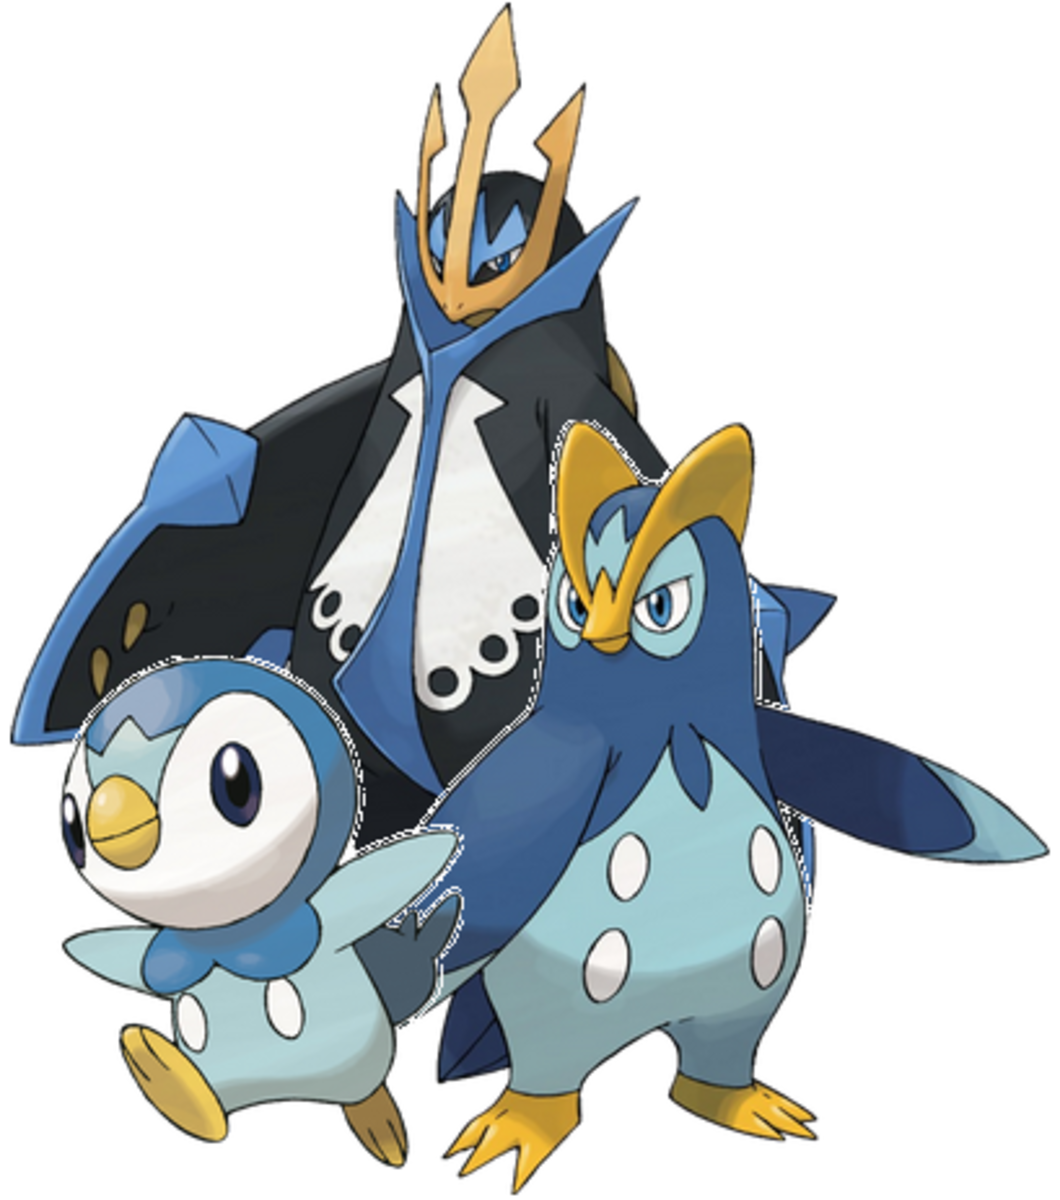 Piplup, Prinplup, and Empoleon